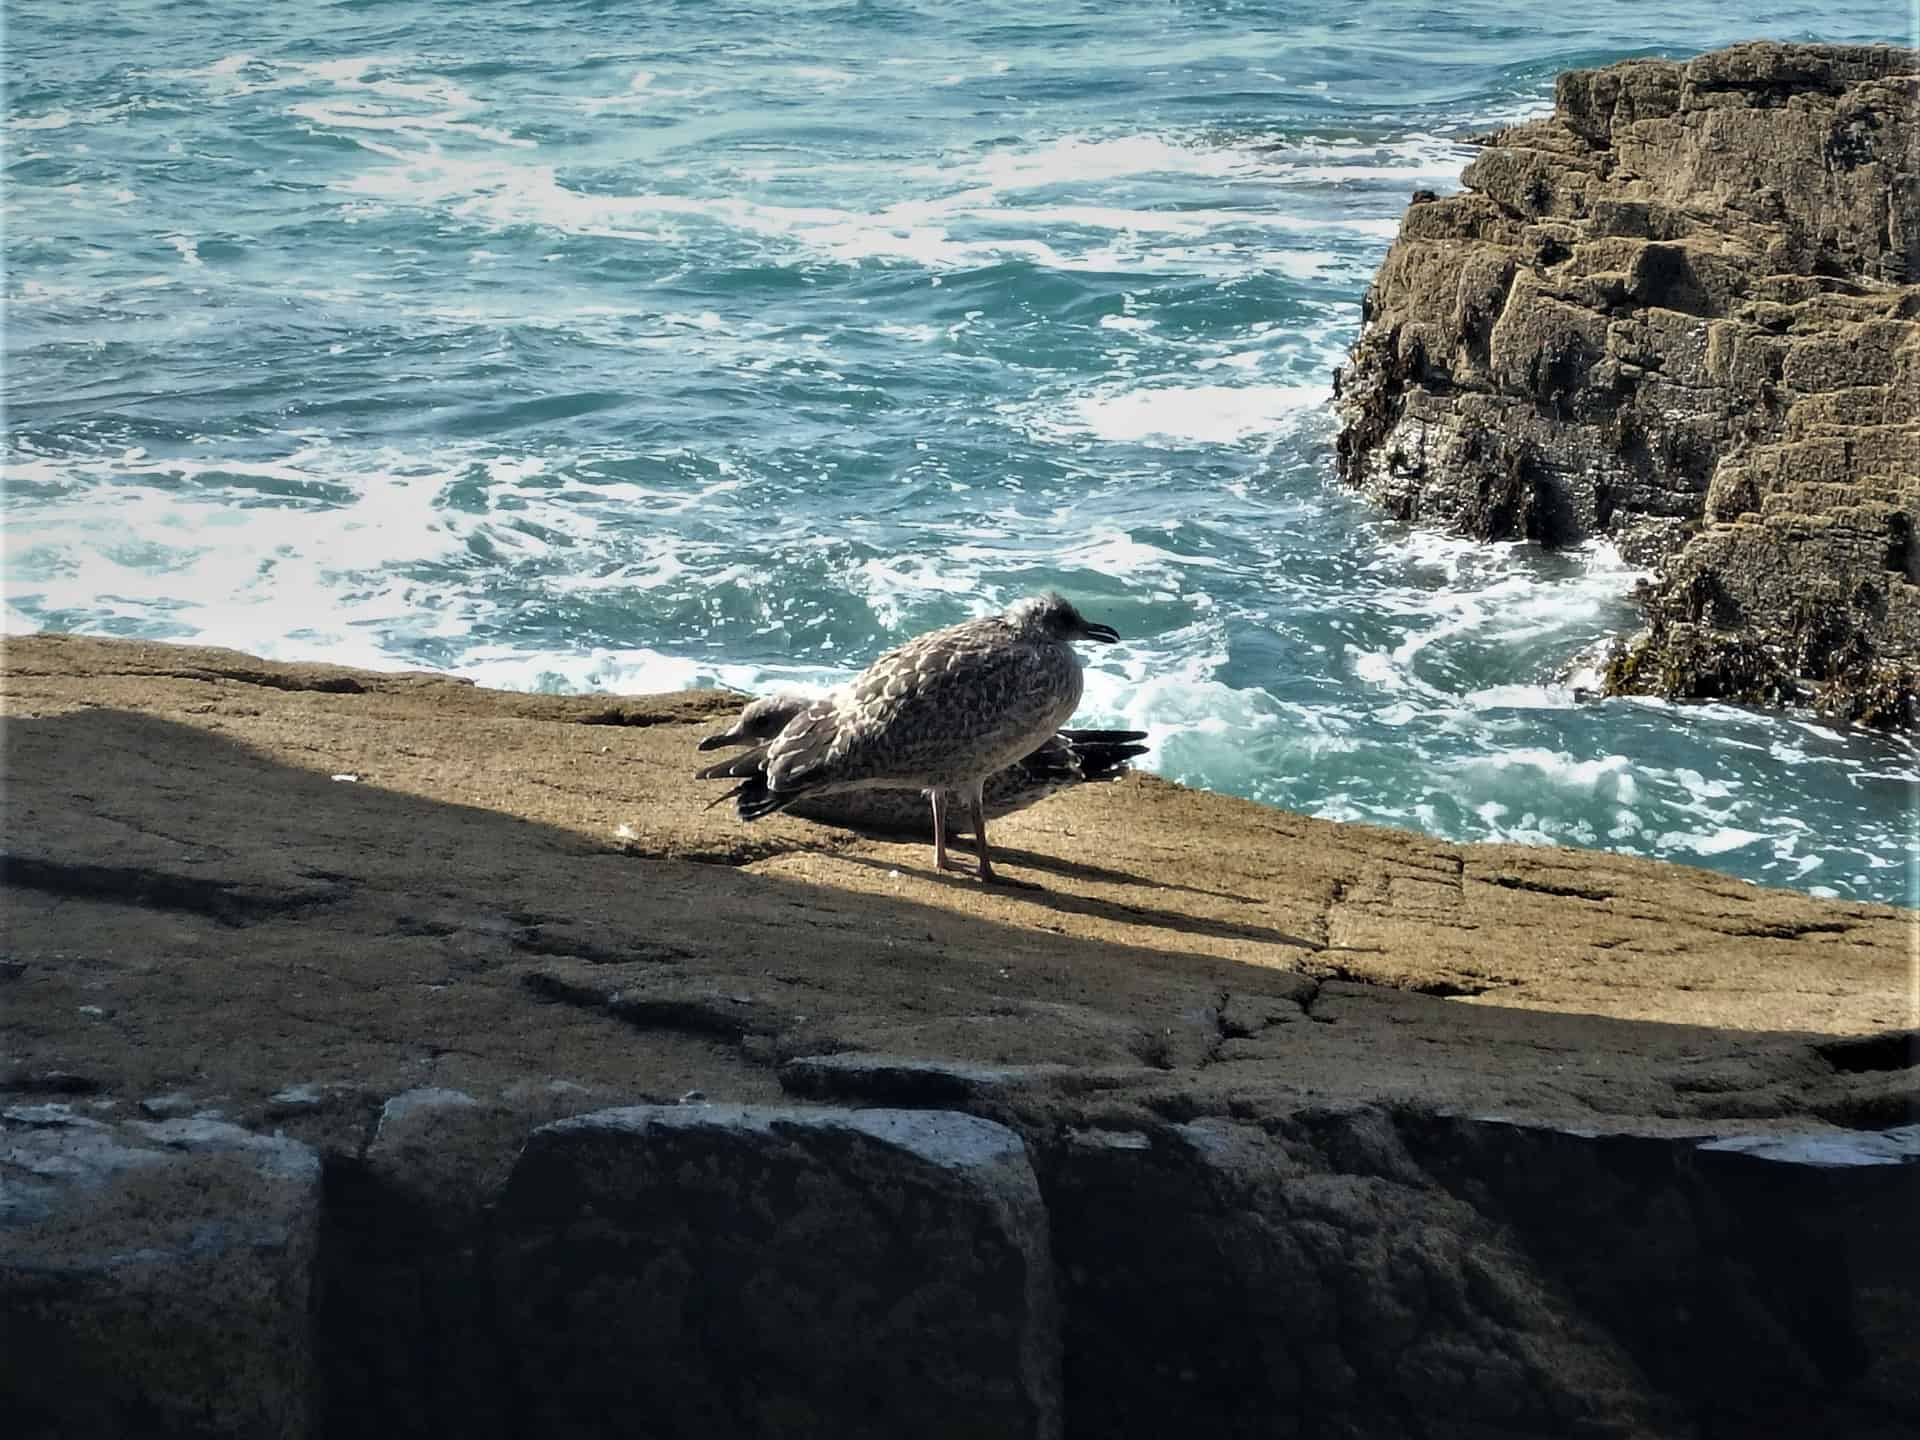 Two herring gull chicks seen whilst coasteering at Praa Sands, Cornwall